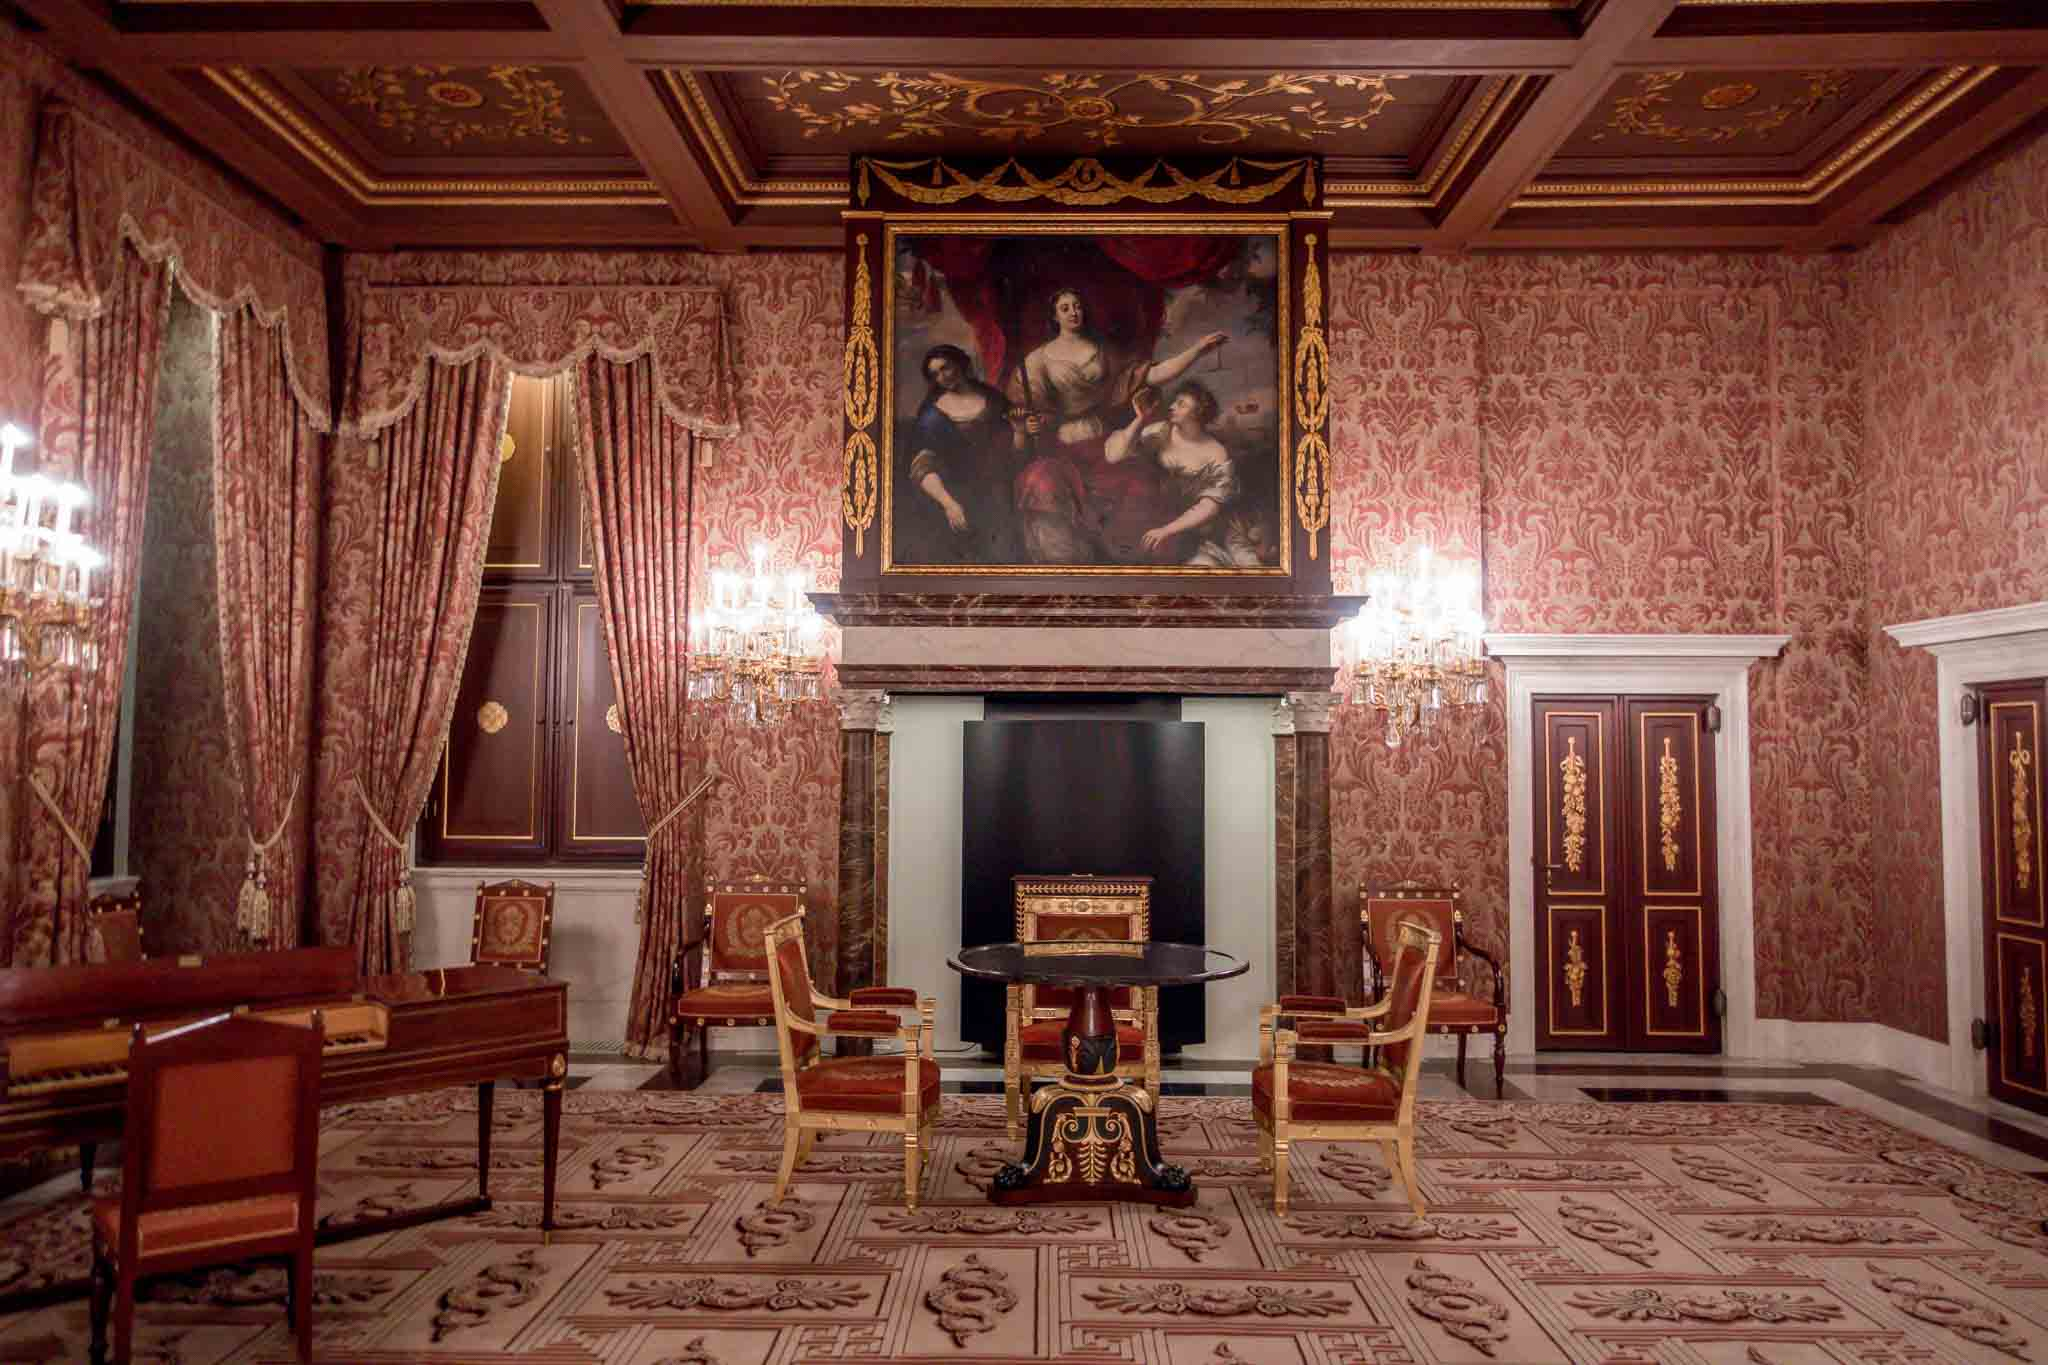 Room with red curtains, wallpaper, and furniture in The Royal Palace